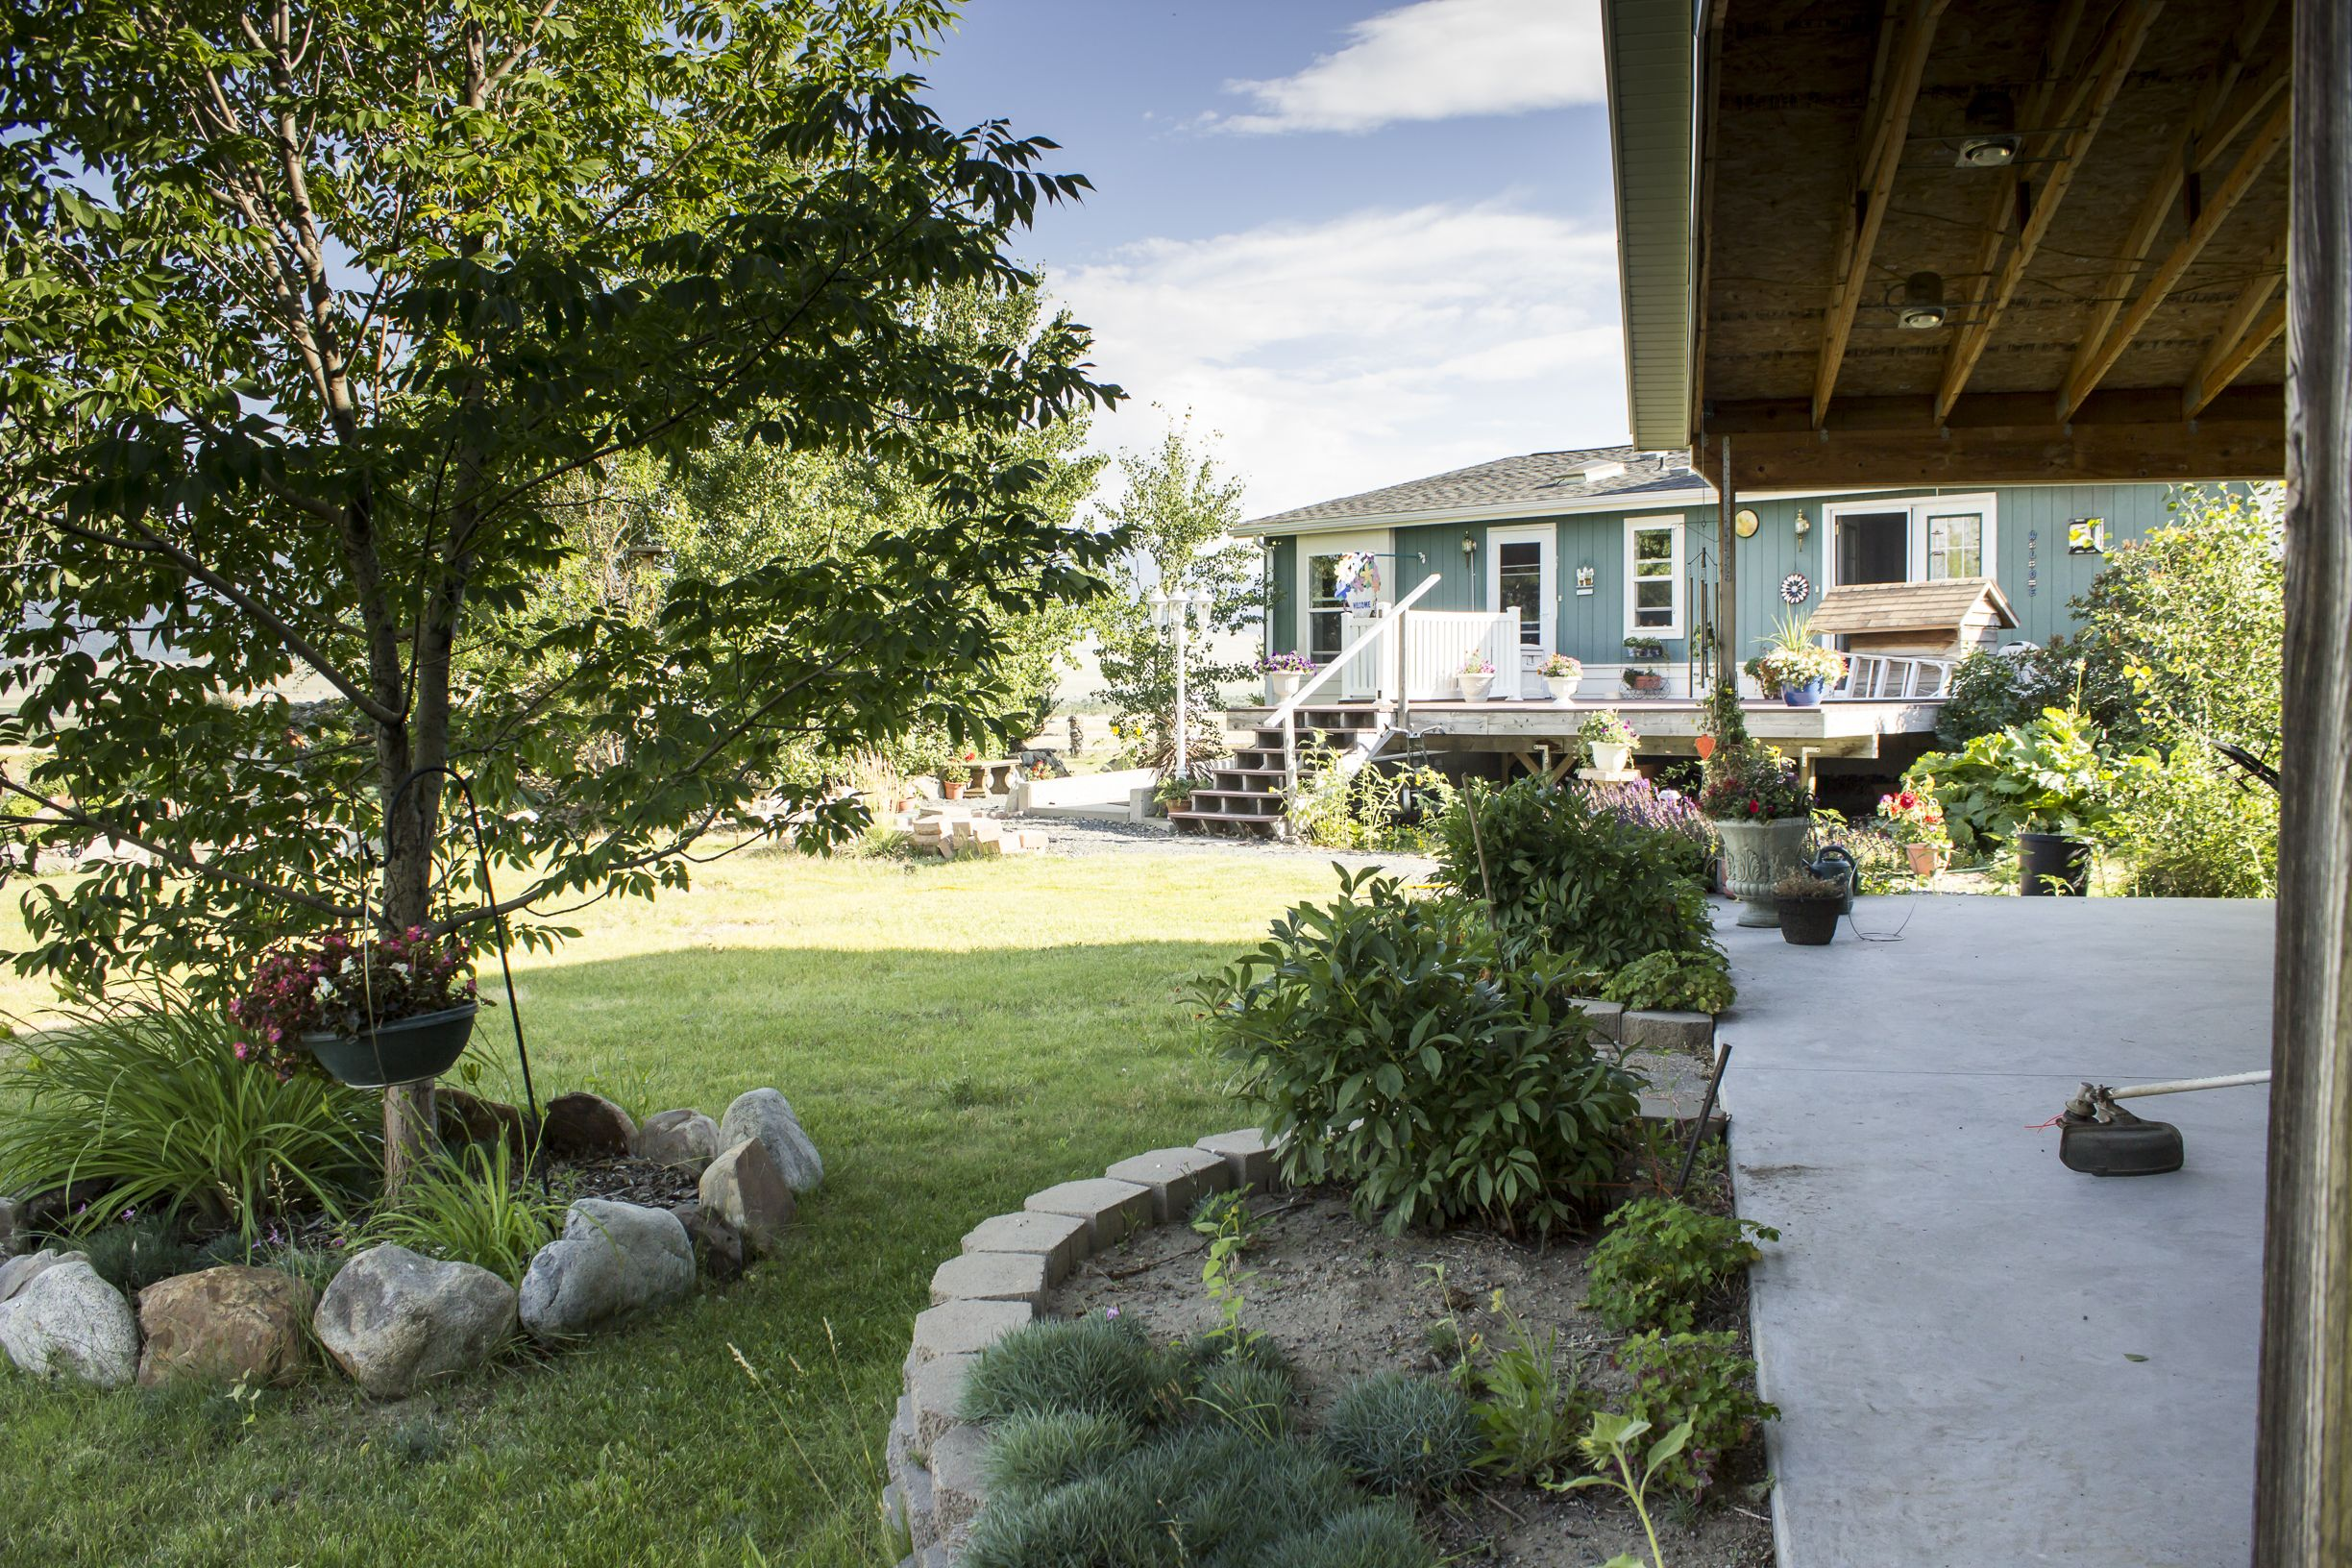 Beautifully landscaped 1 acre yard | Outdoor decor, Patio